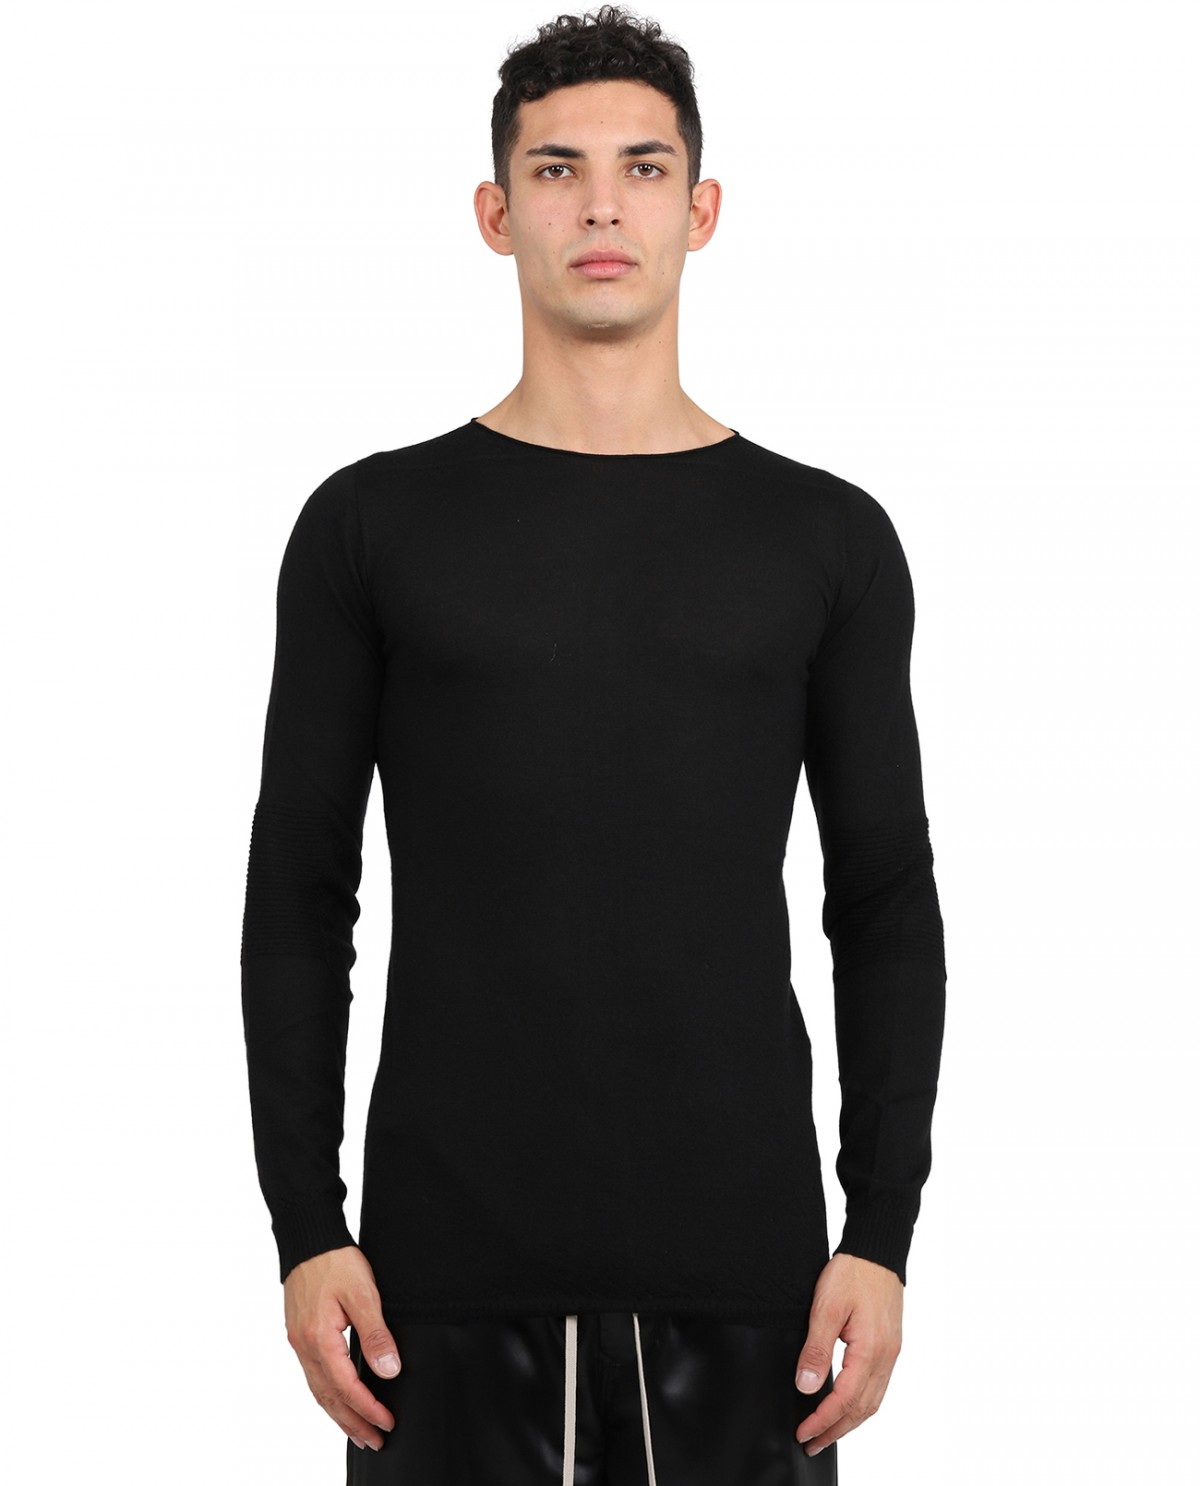 Rick Owens black cashmere sweater